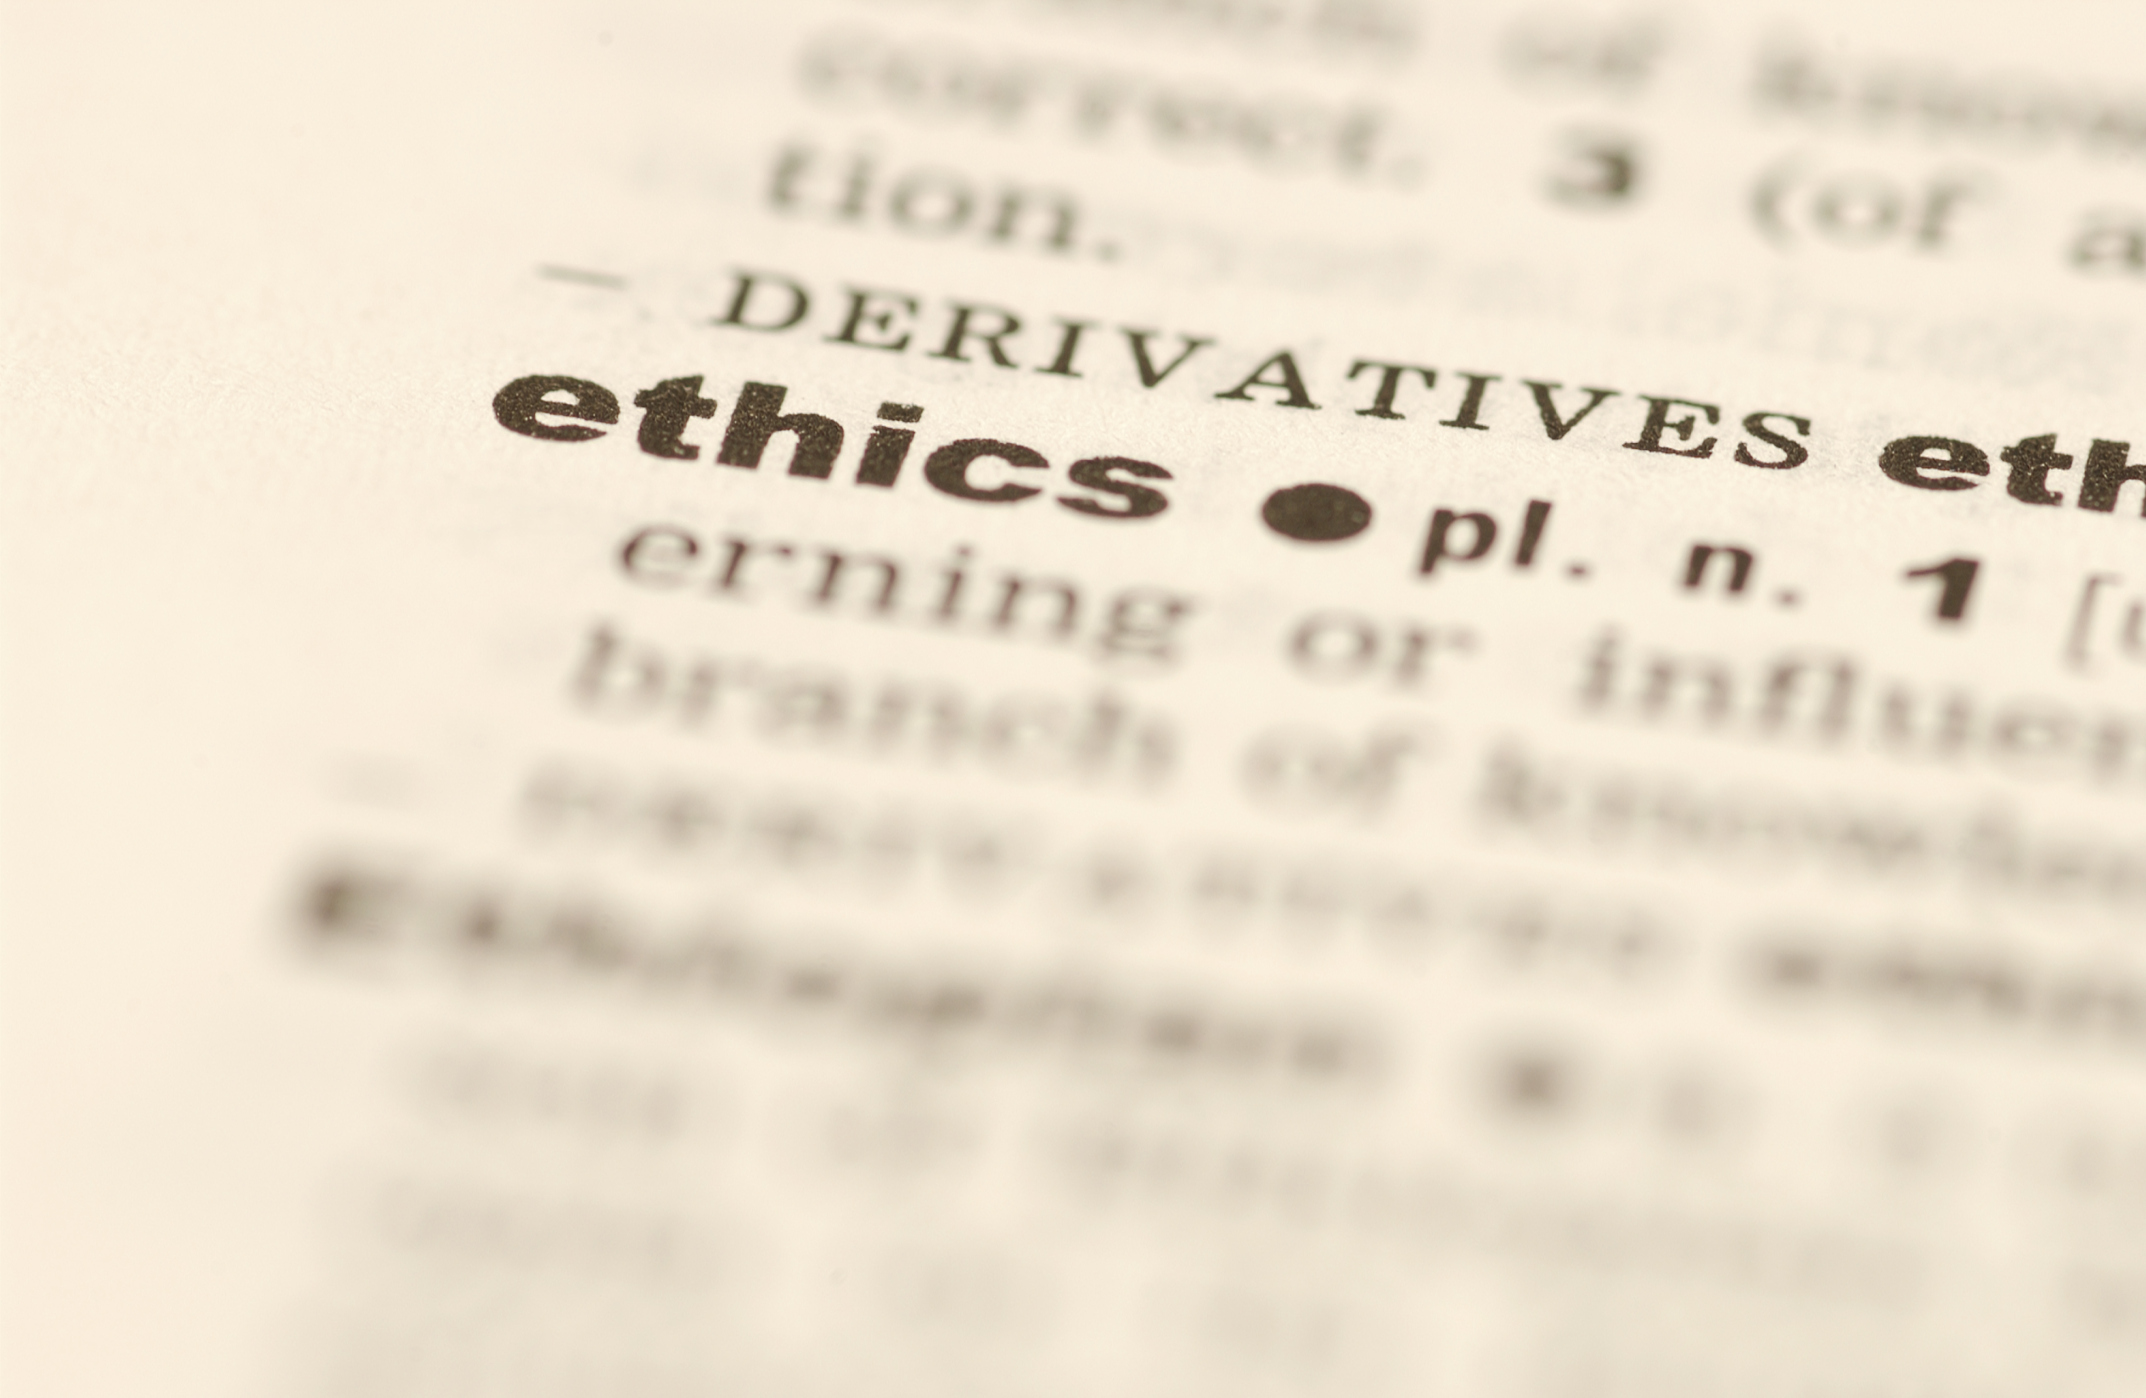 define compromise of ethics | bizfluent